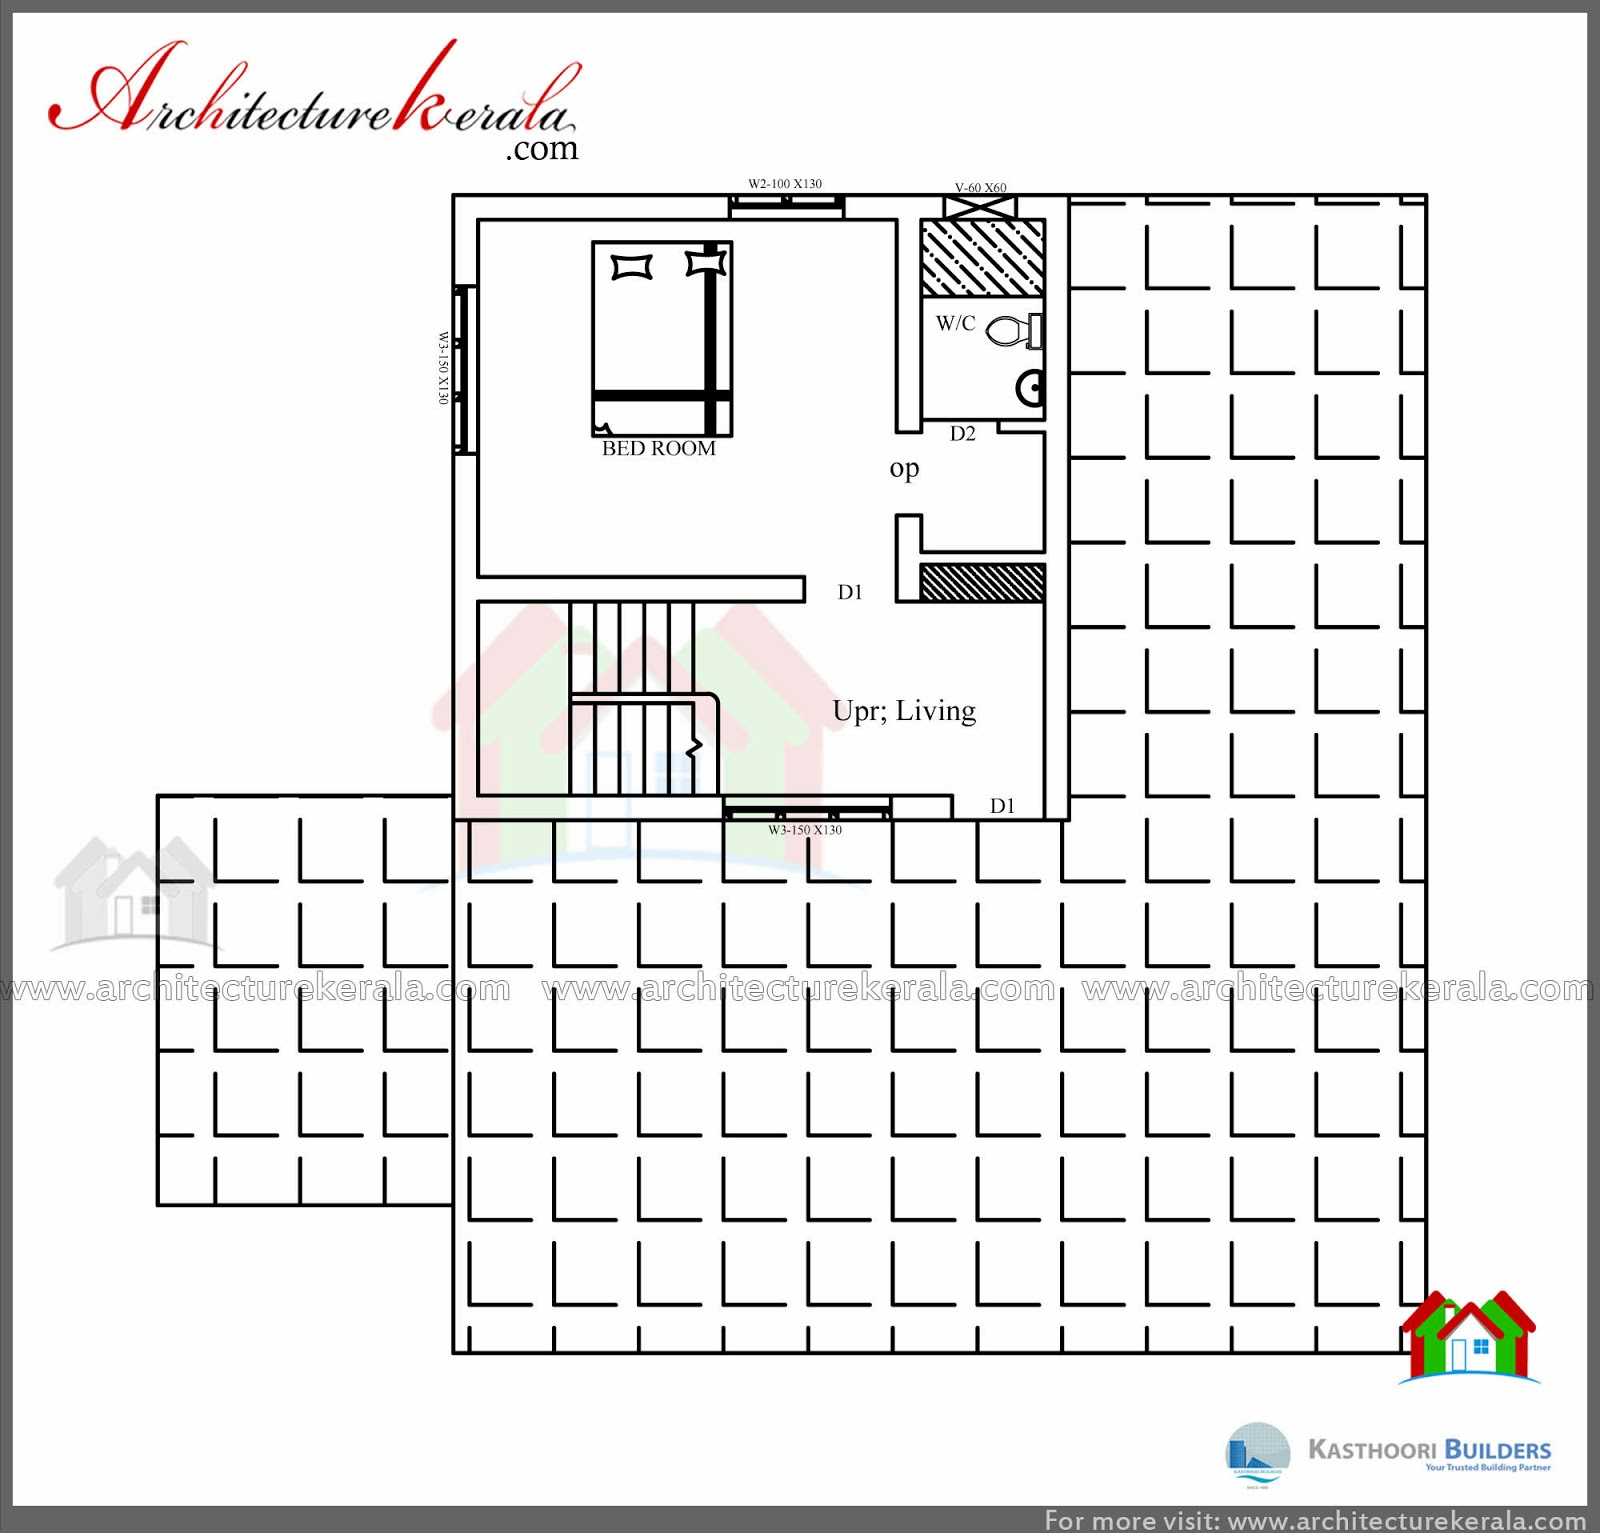 Low cost 3 bedroom kerala house plan with elevation free for 1600 sq ft house cost